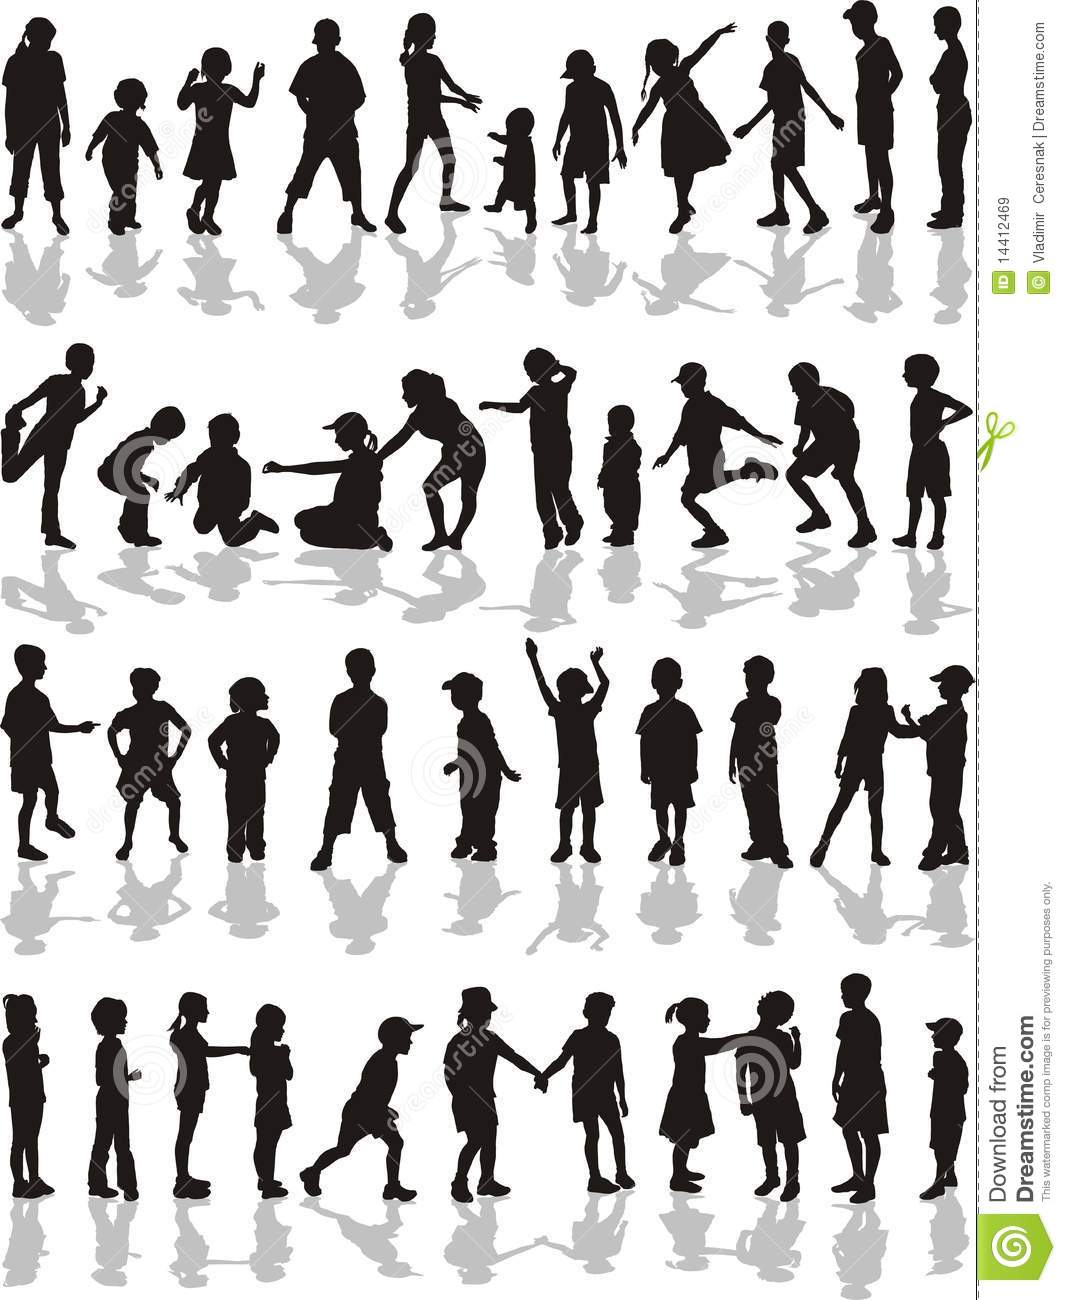 Kids Silhouettes Vector Illustration Royalty Free Stock